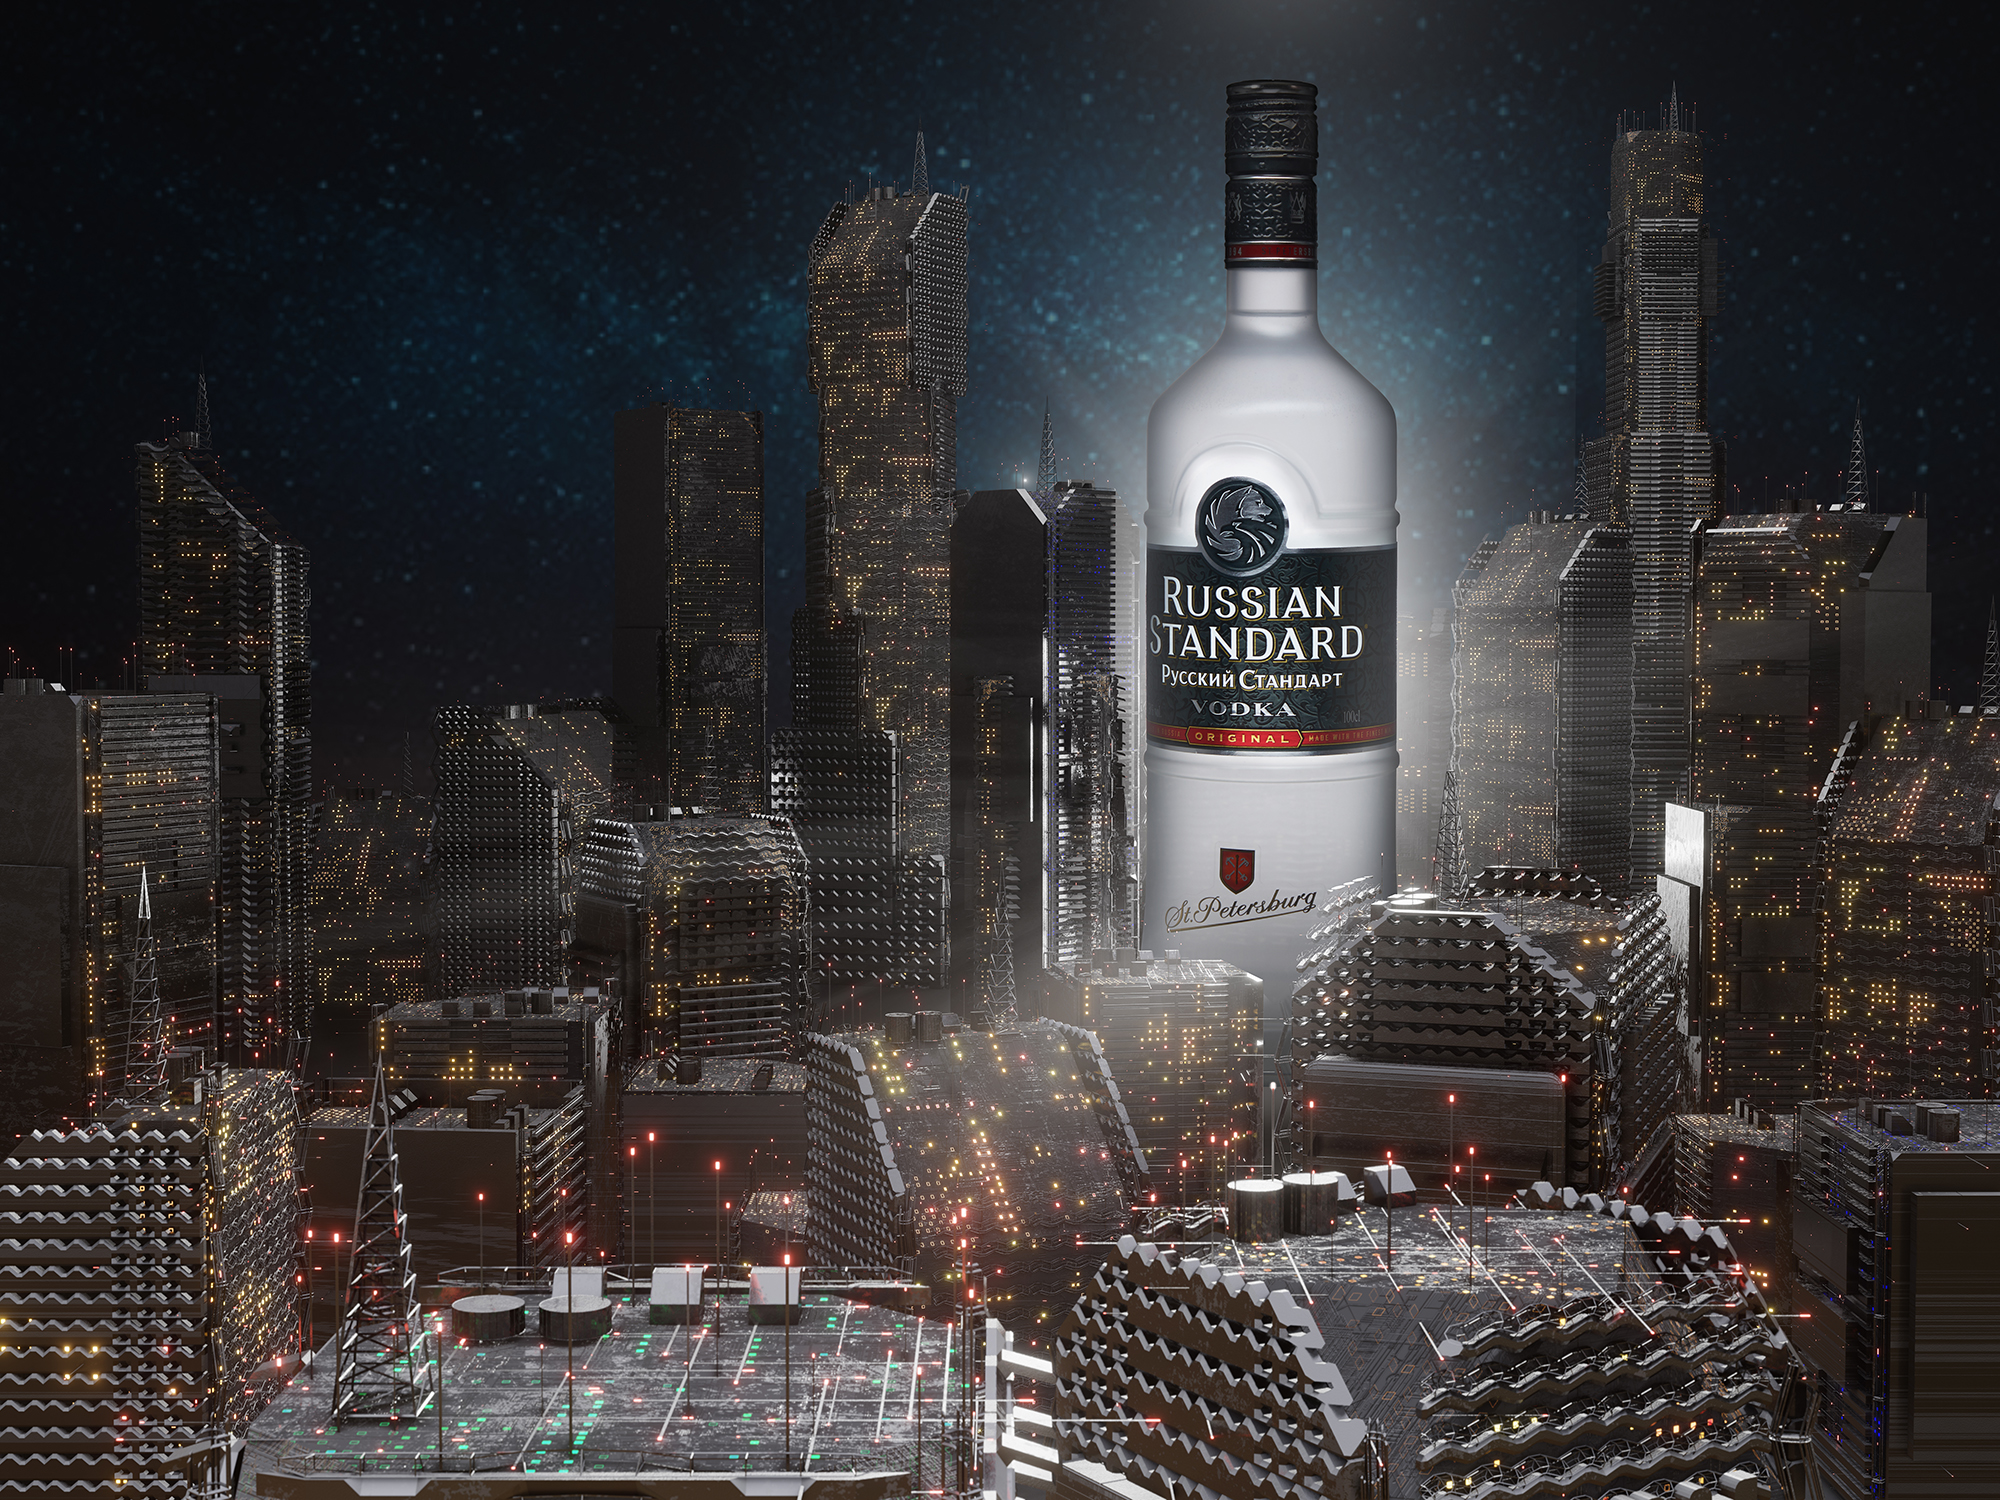 Russian Standard Vodka Bottle using CGI cityscape background created by professional photographer Ian Knaggs